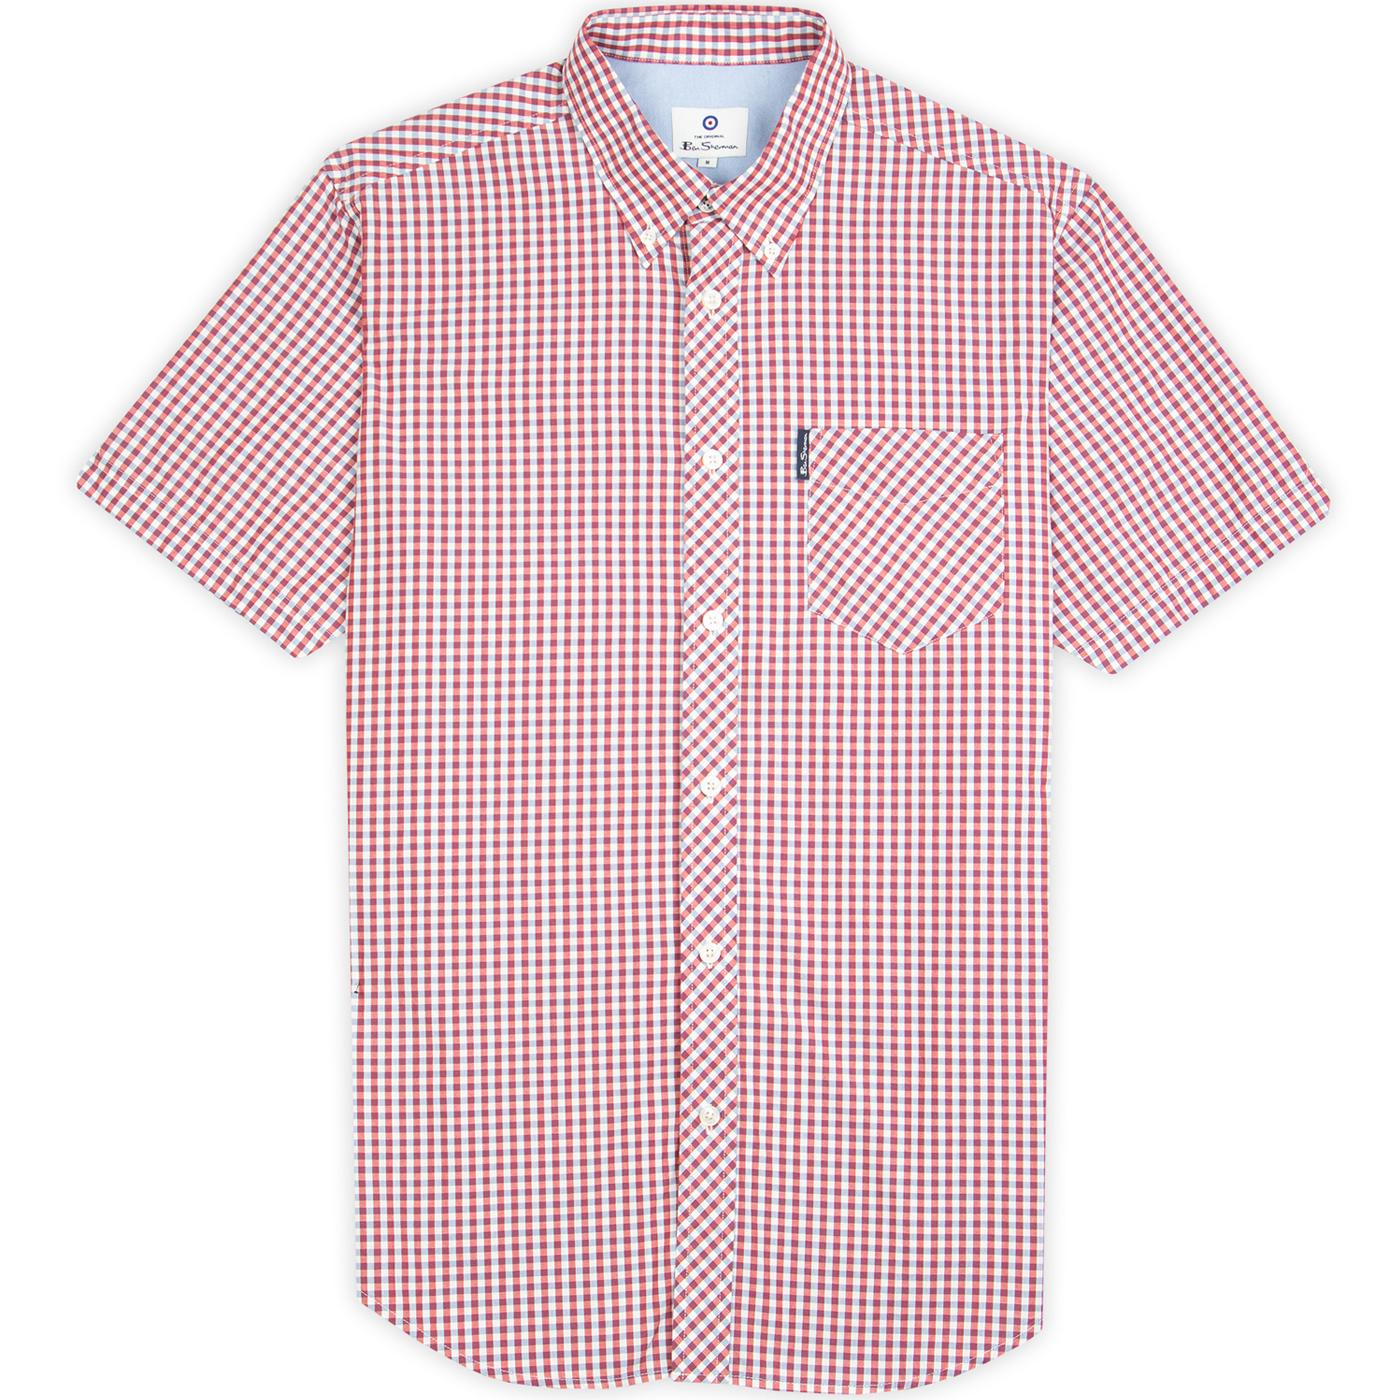 BEN SHERMAN Mod SS Signature Gingham Shirt (Red)